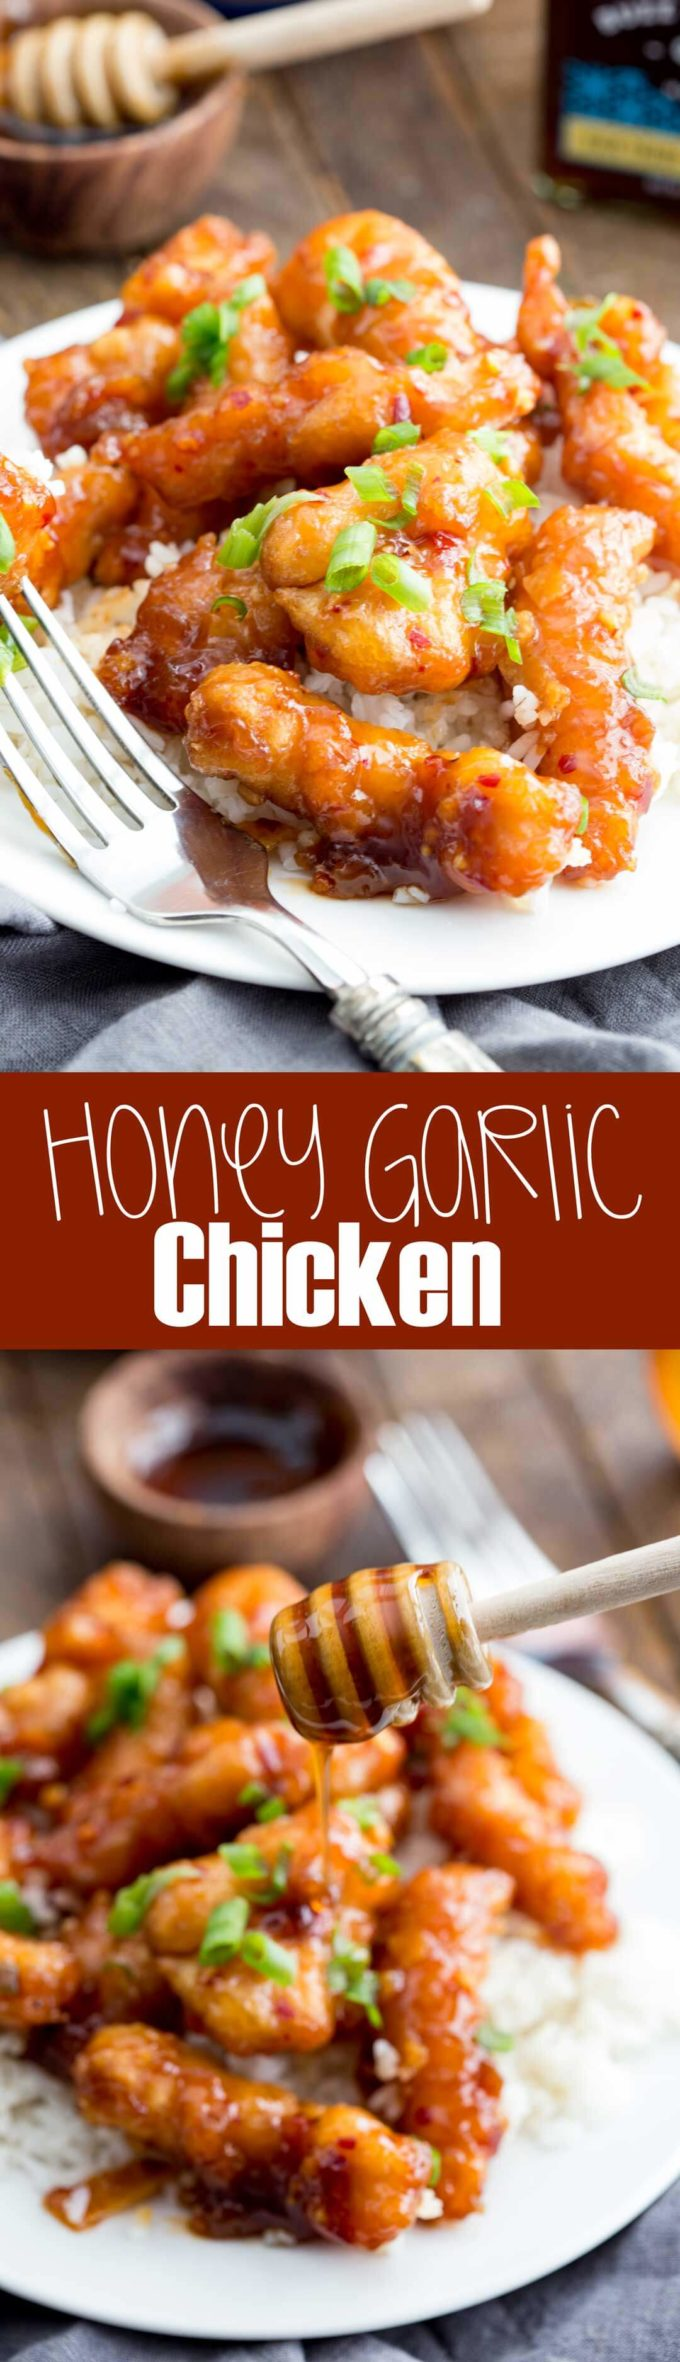 Stick honey chicken is the bomb! I served this to guests and they went insane for it. Yum! #ad #buzznbloom